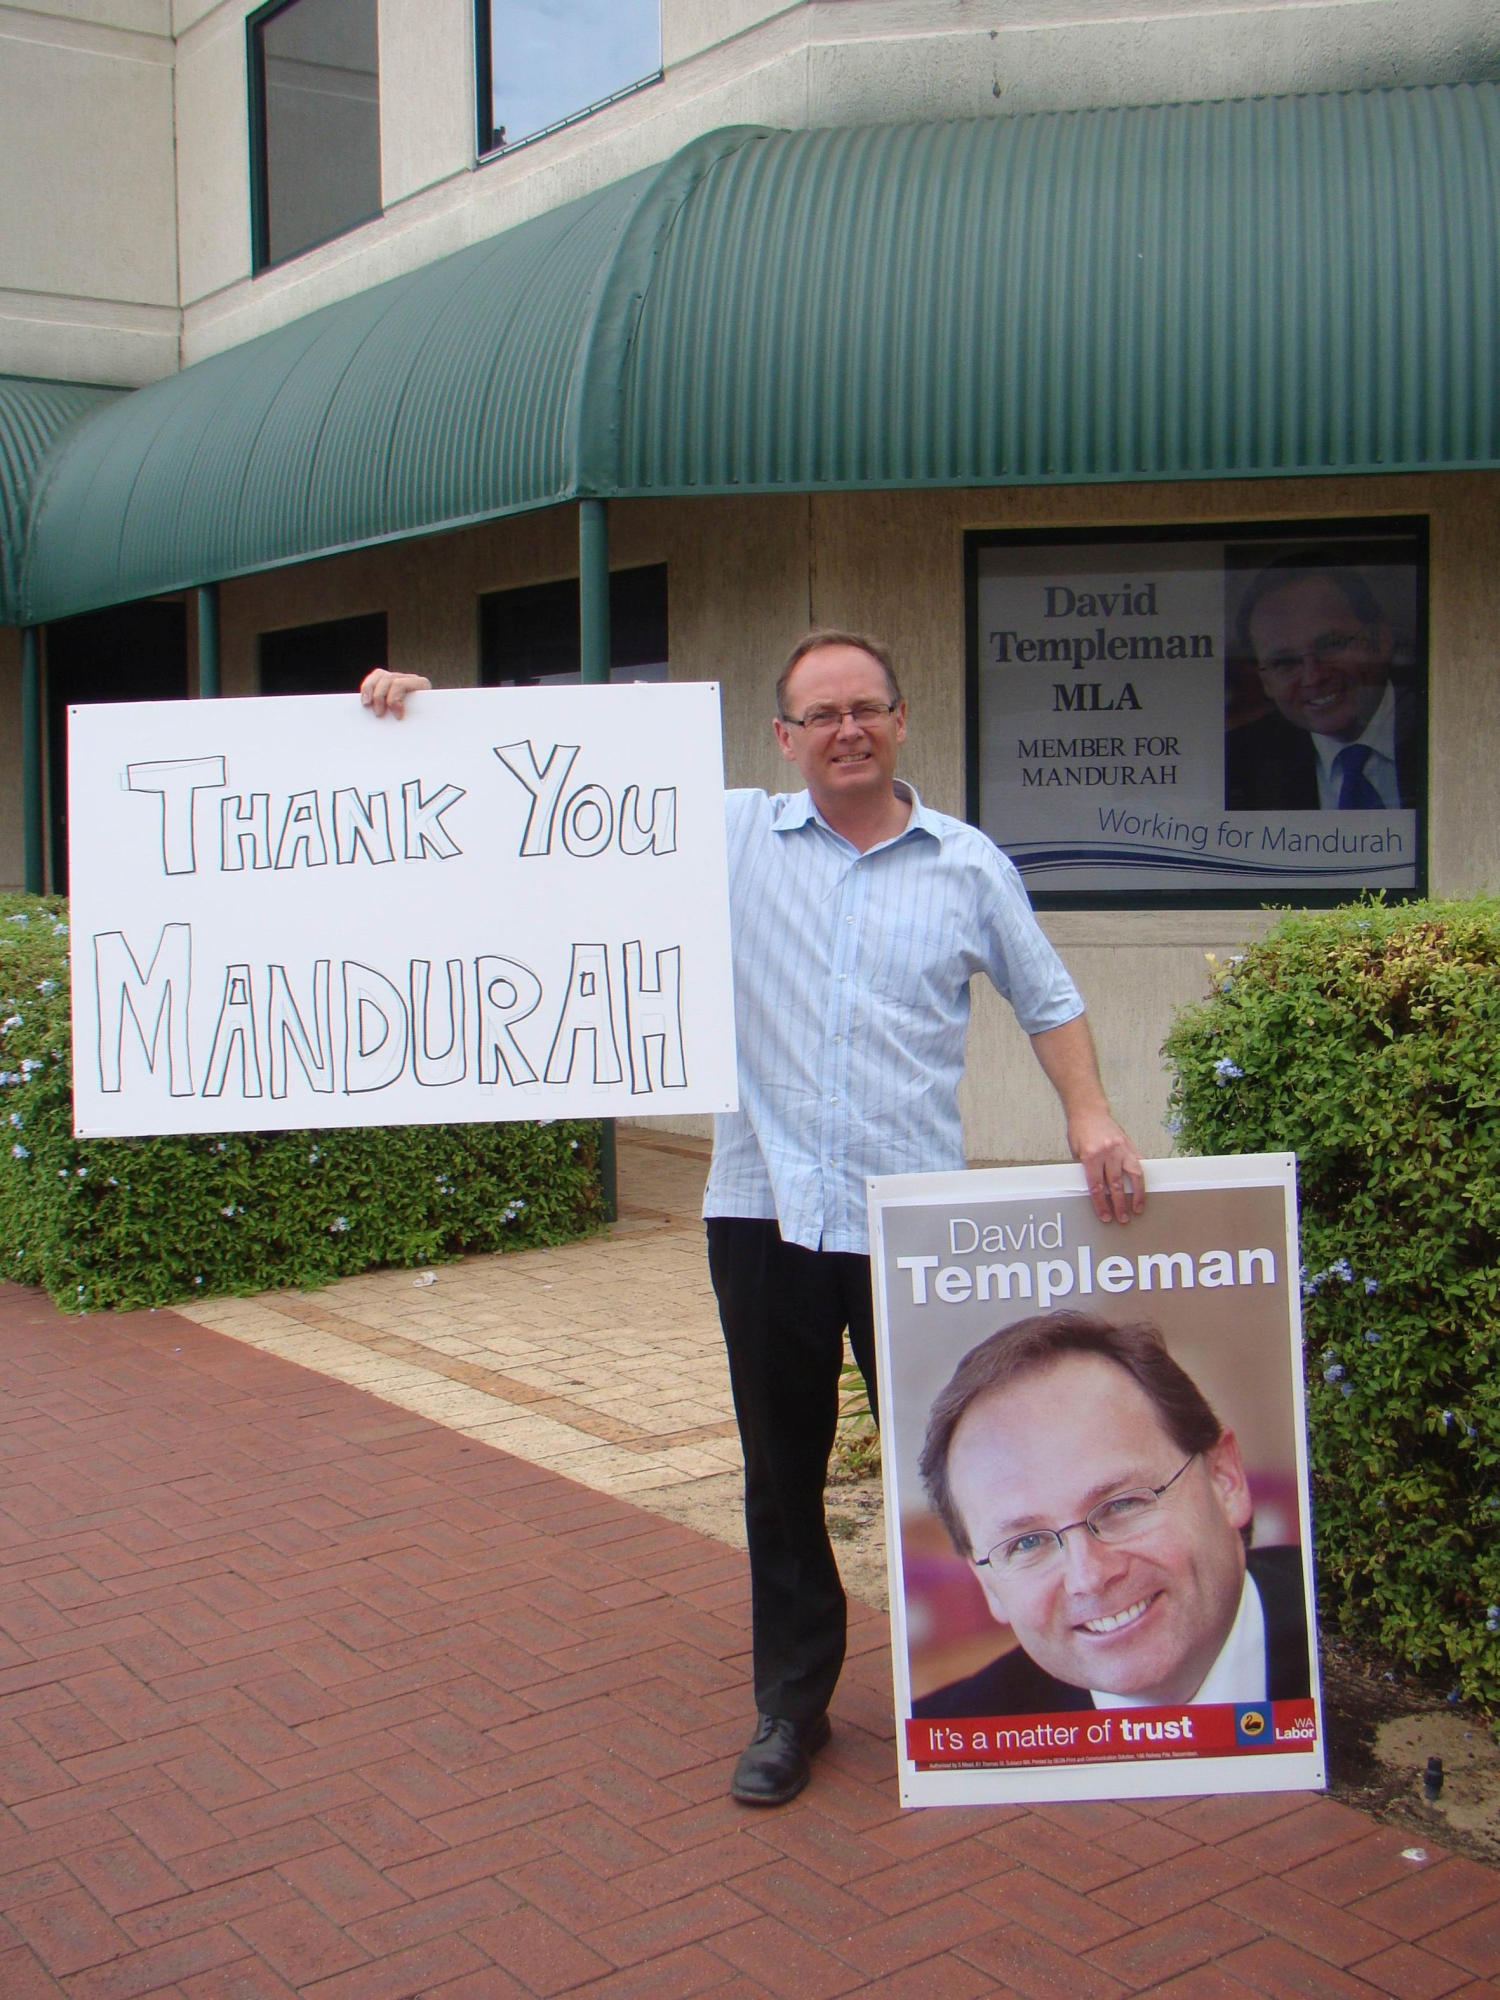 Mandurah MLA David Templeman thanks his supporters.